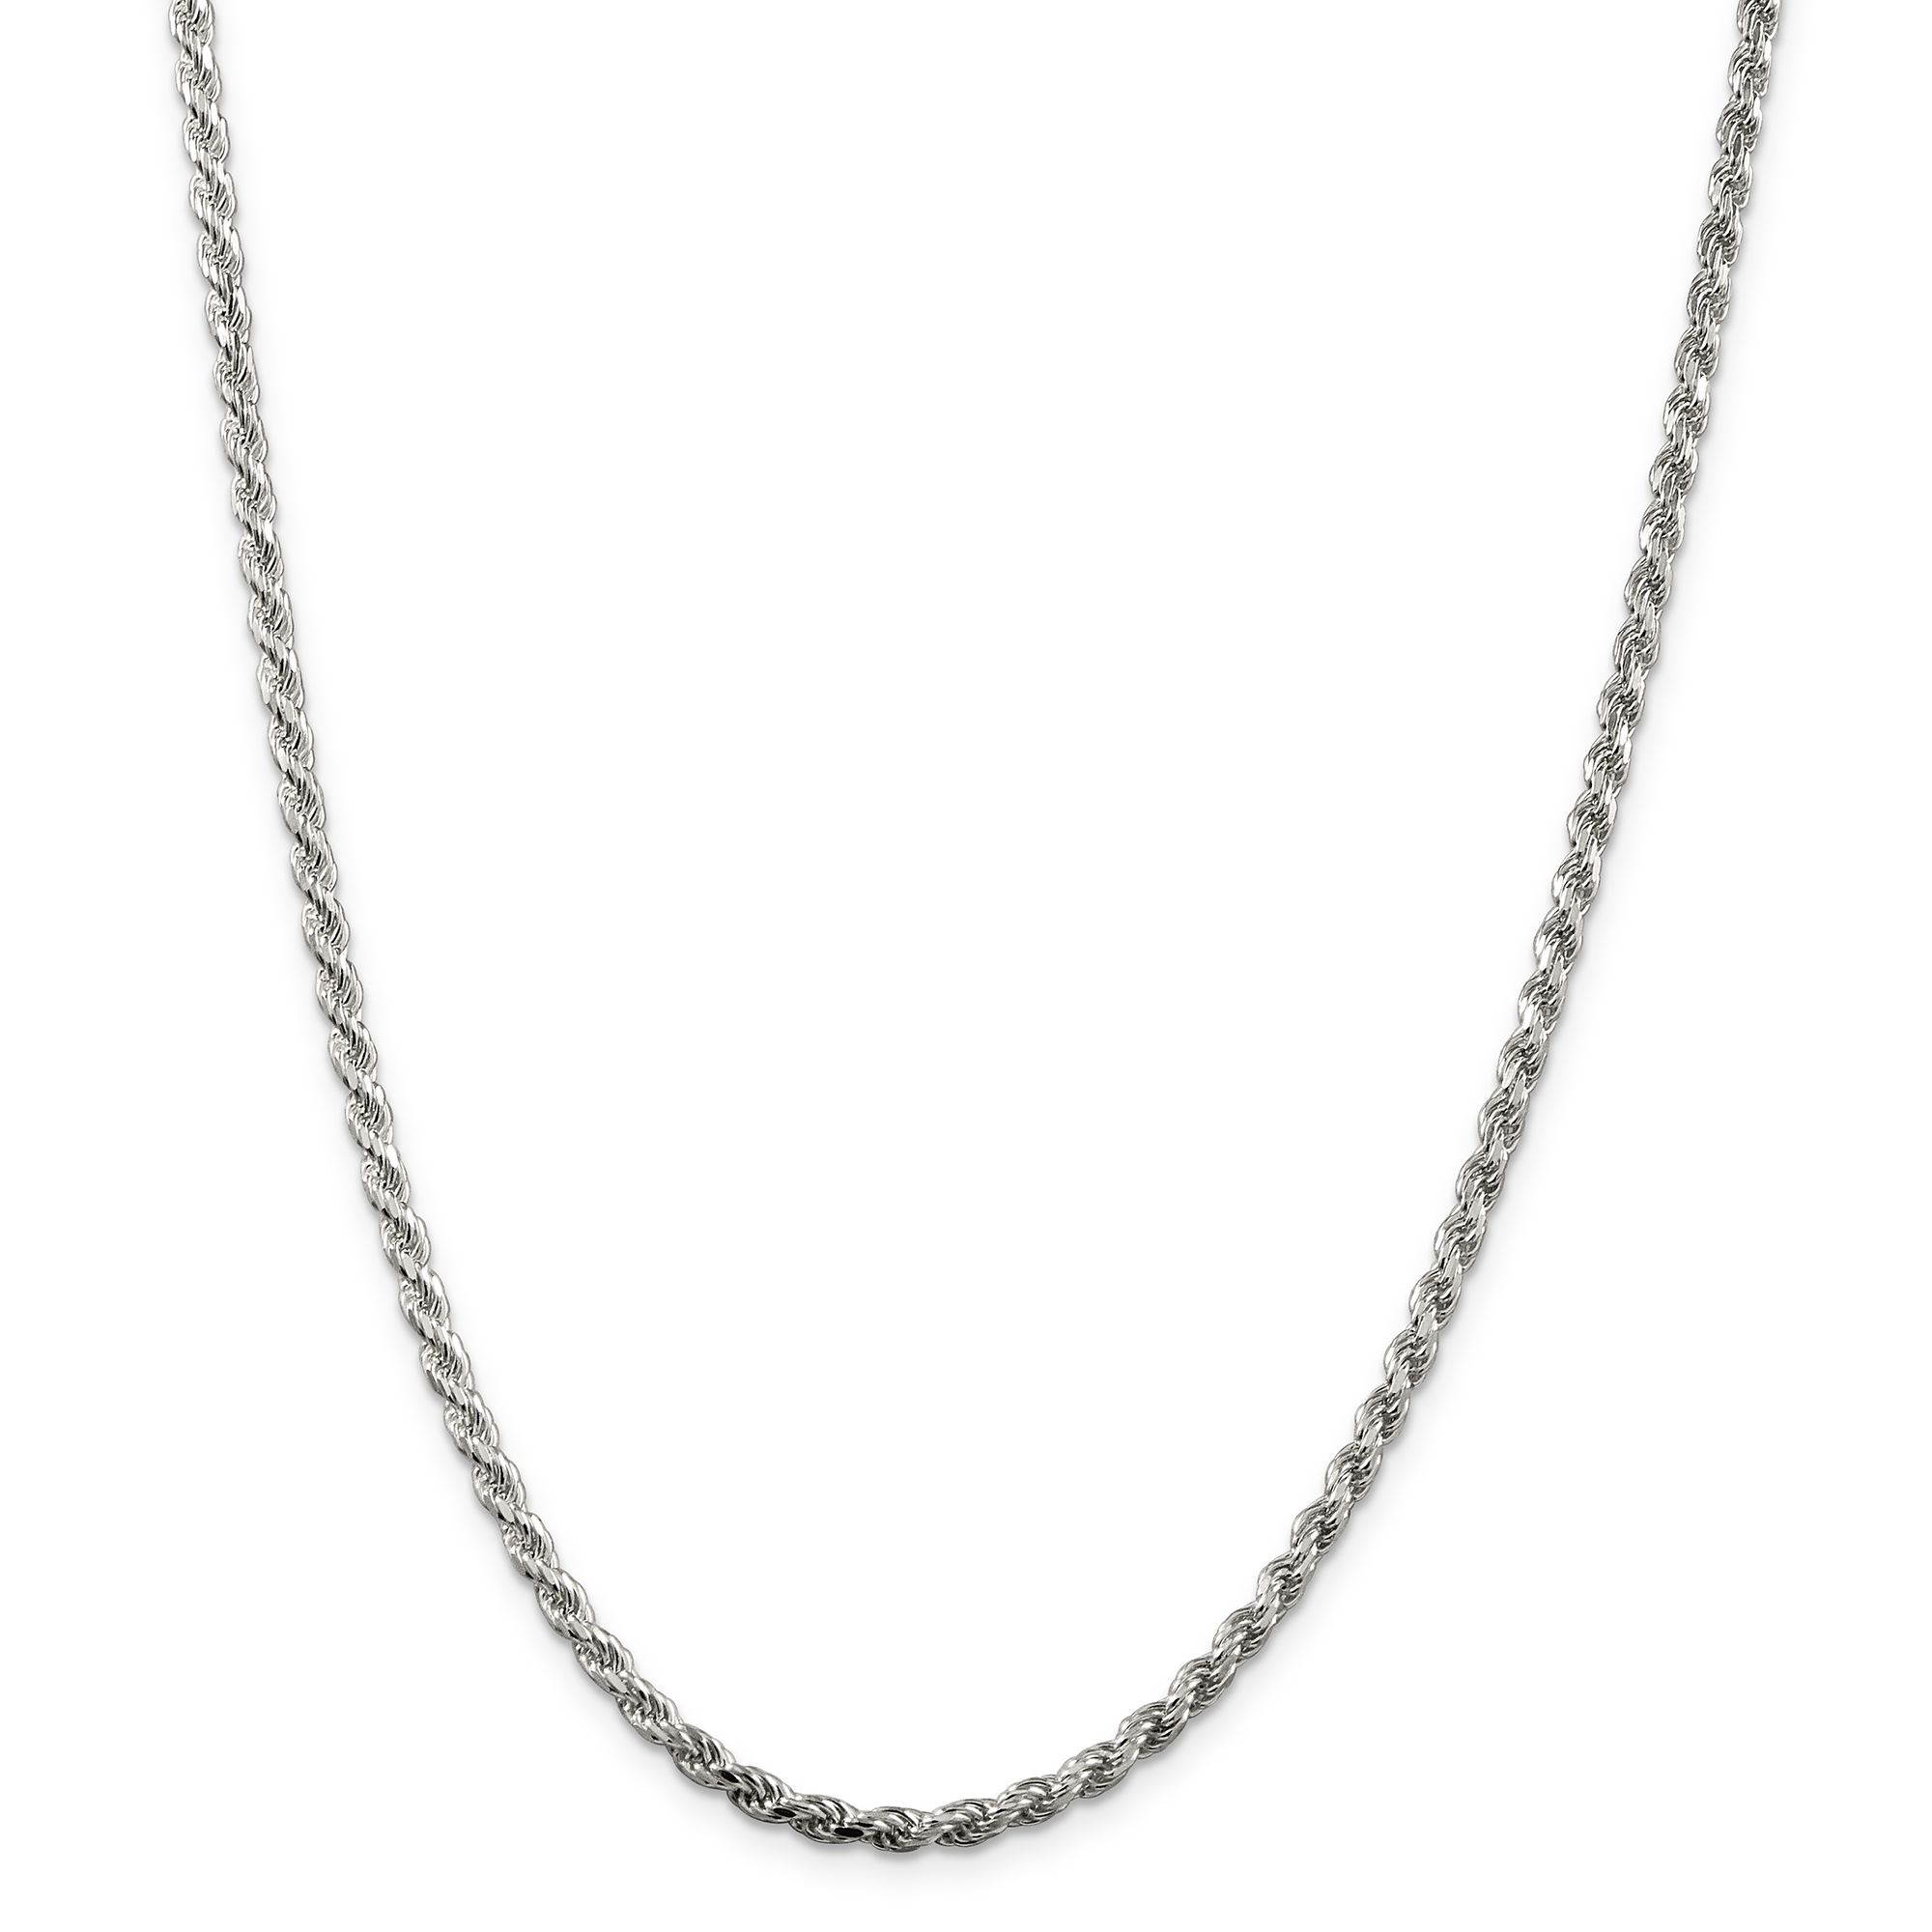 925 Sterling Silver 3mm Diamond-cut Rope Chain 16 Inch - image 5 of 5